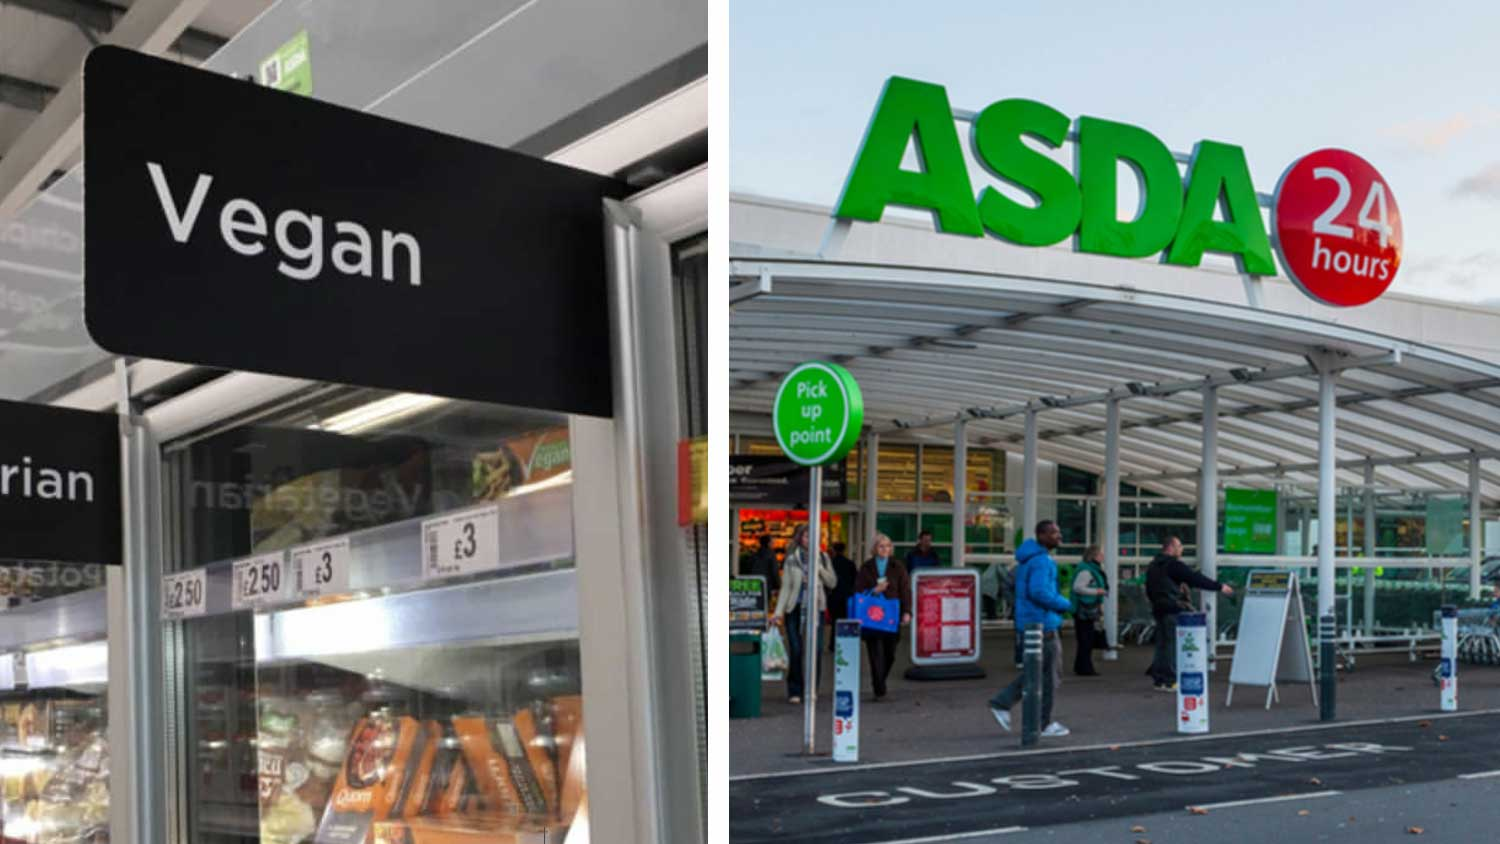 Dedicated Vegan Section Arrives at Asda Supermarkets